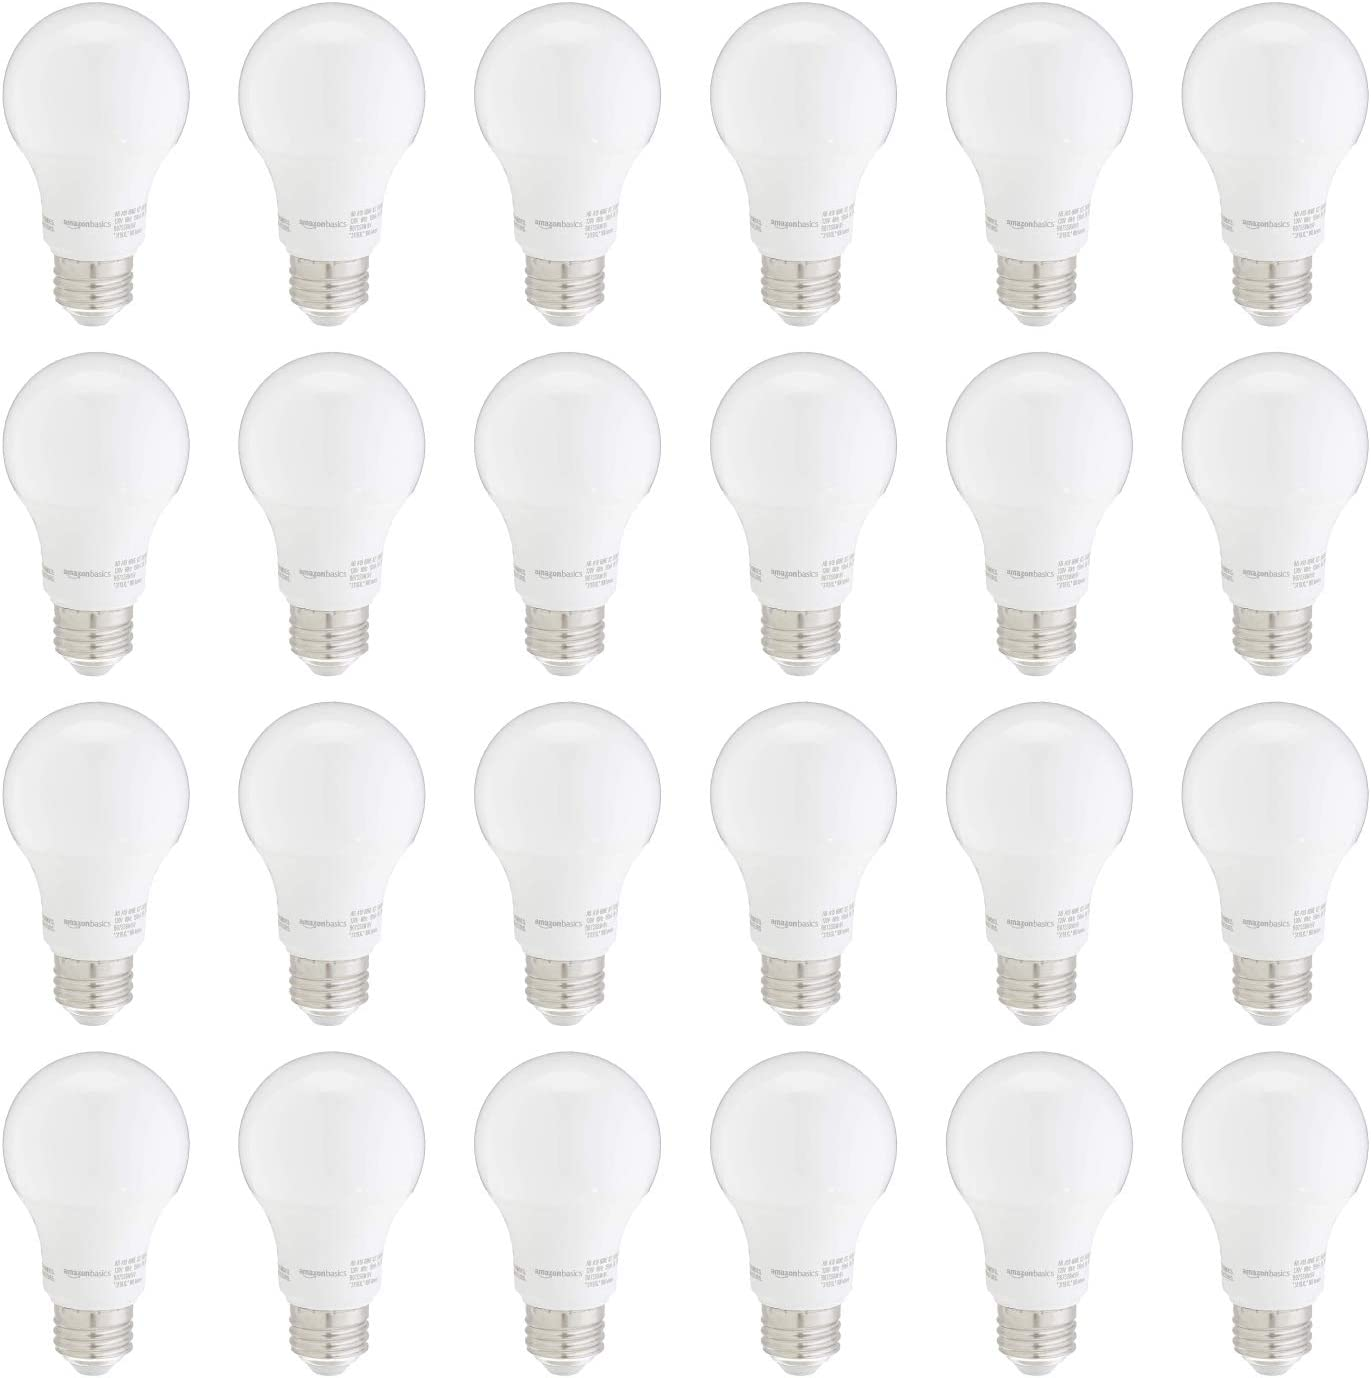 AmazonBasics 60W Equivalent, Daylight, Non-Dimmable, 10,000 Hour Lifetime, A19 LED Light Bulb   24-Pack